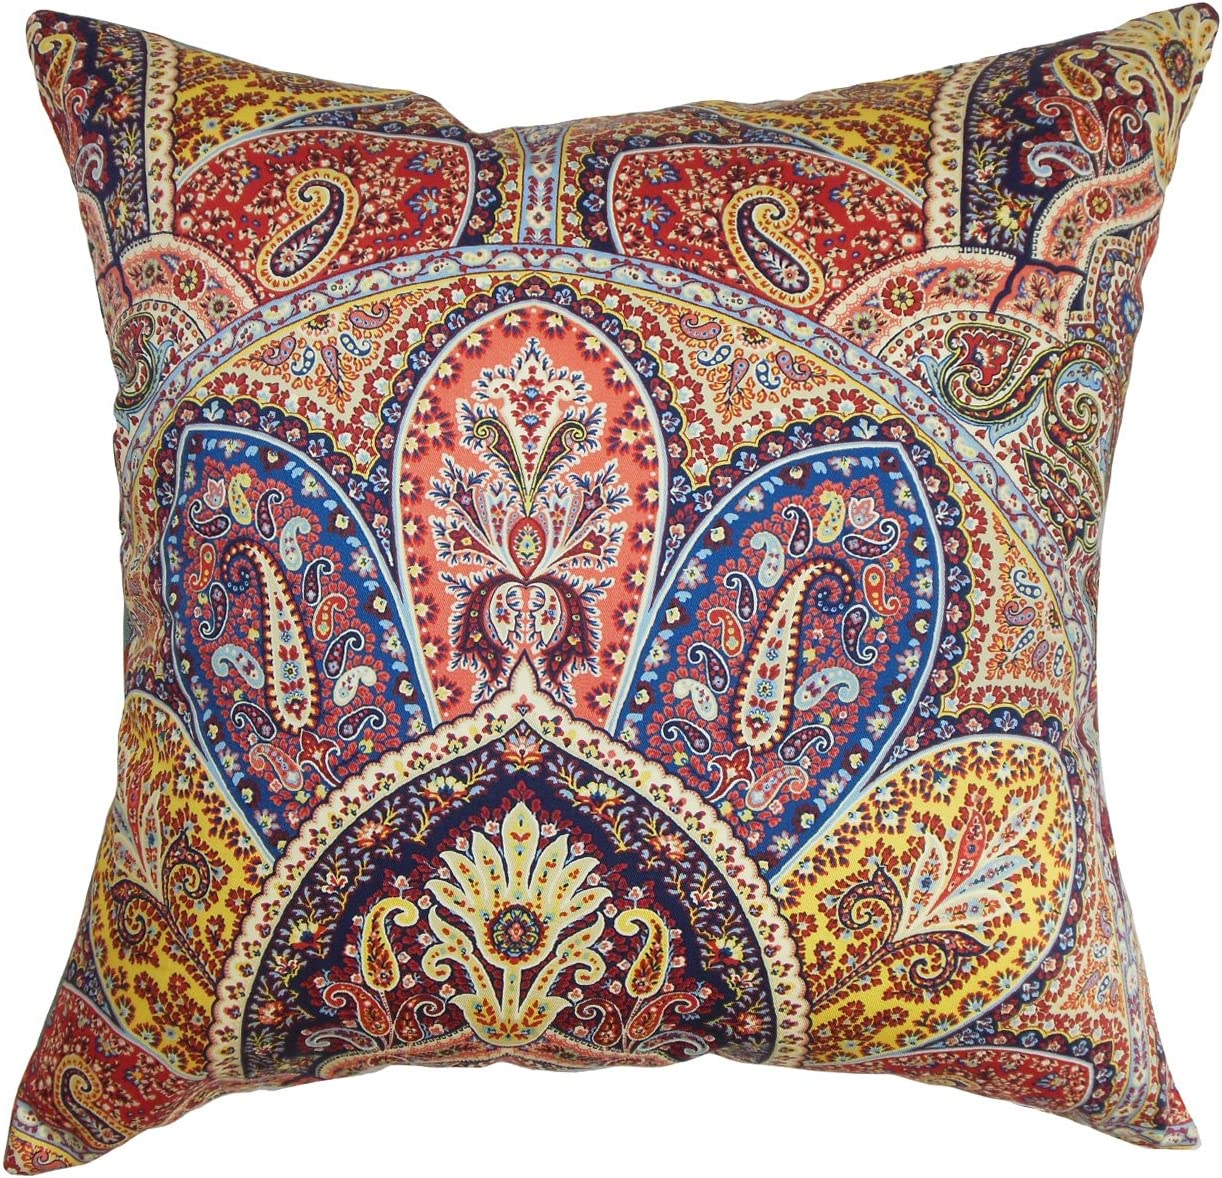 The Pillow Collection Lehana Paisley Multicolor Blue Ranking integrated 1st place Detroit Mall